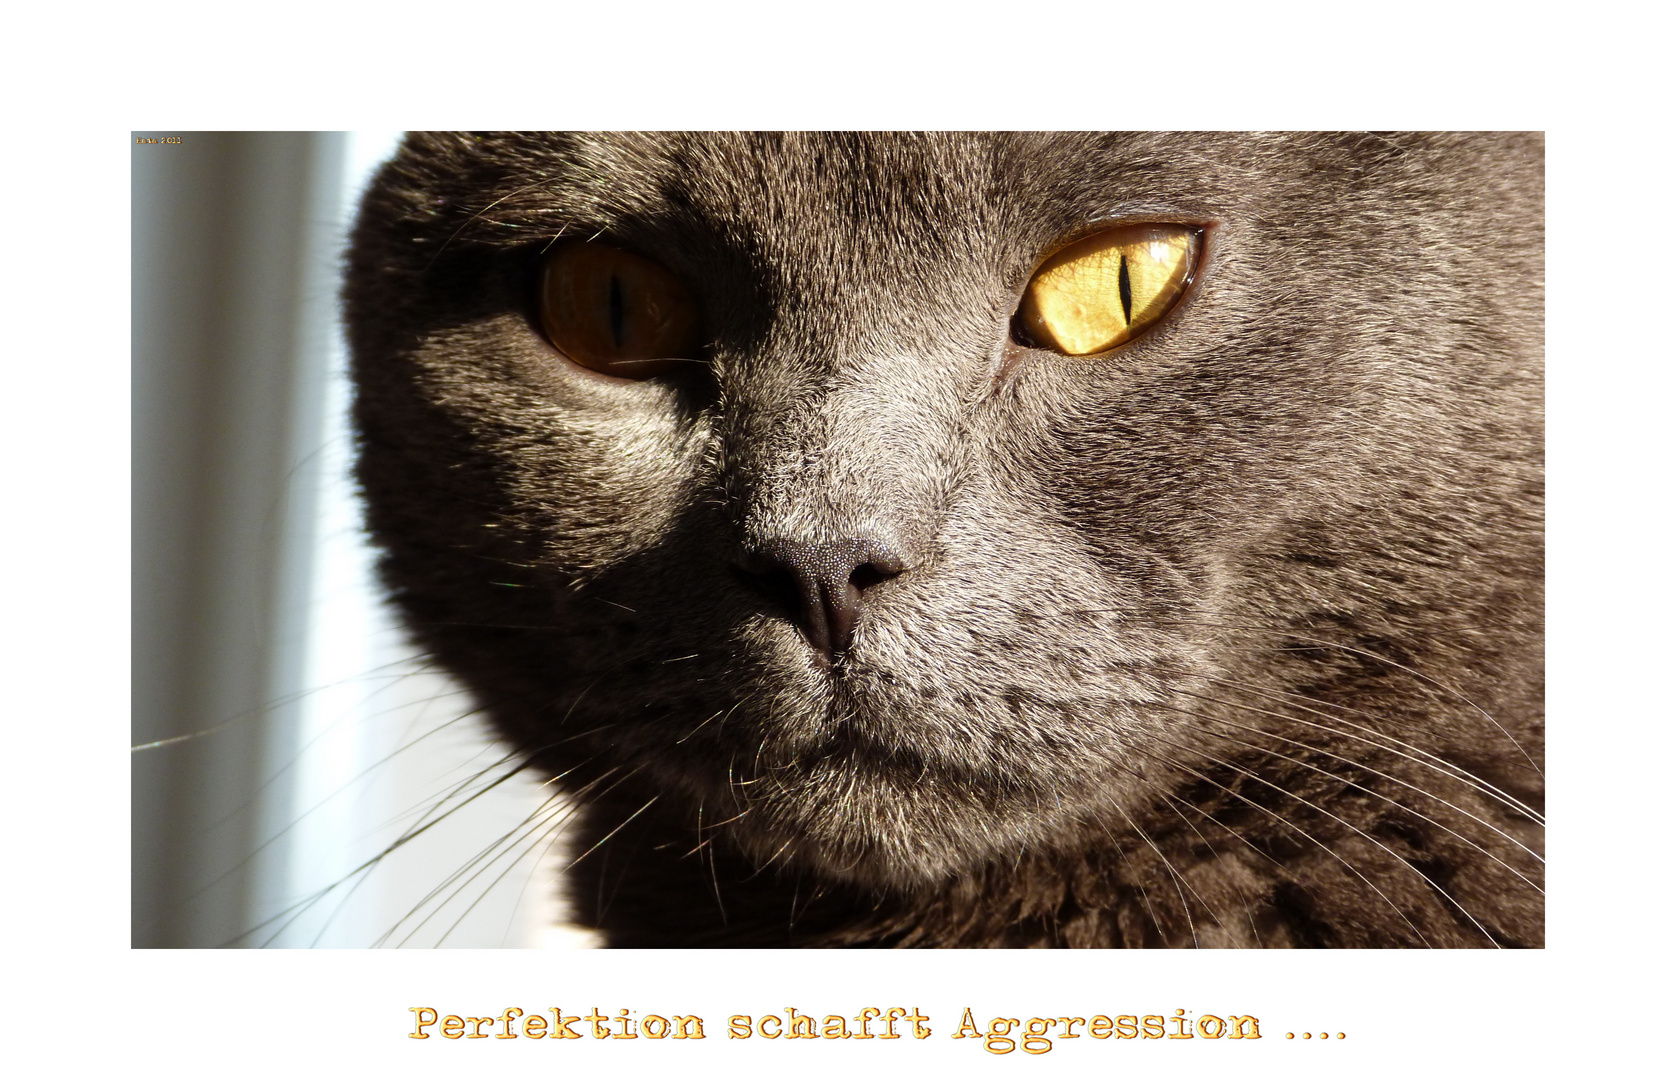 Perfektion schafft Aggression .....